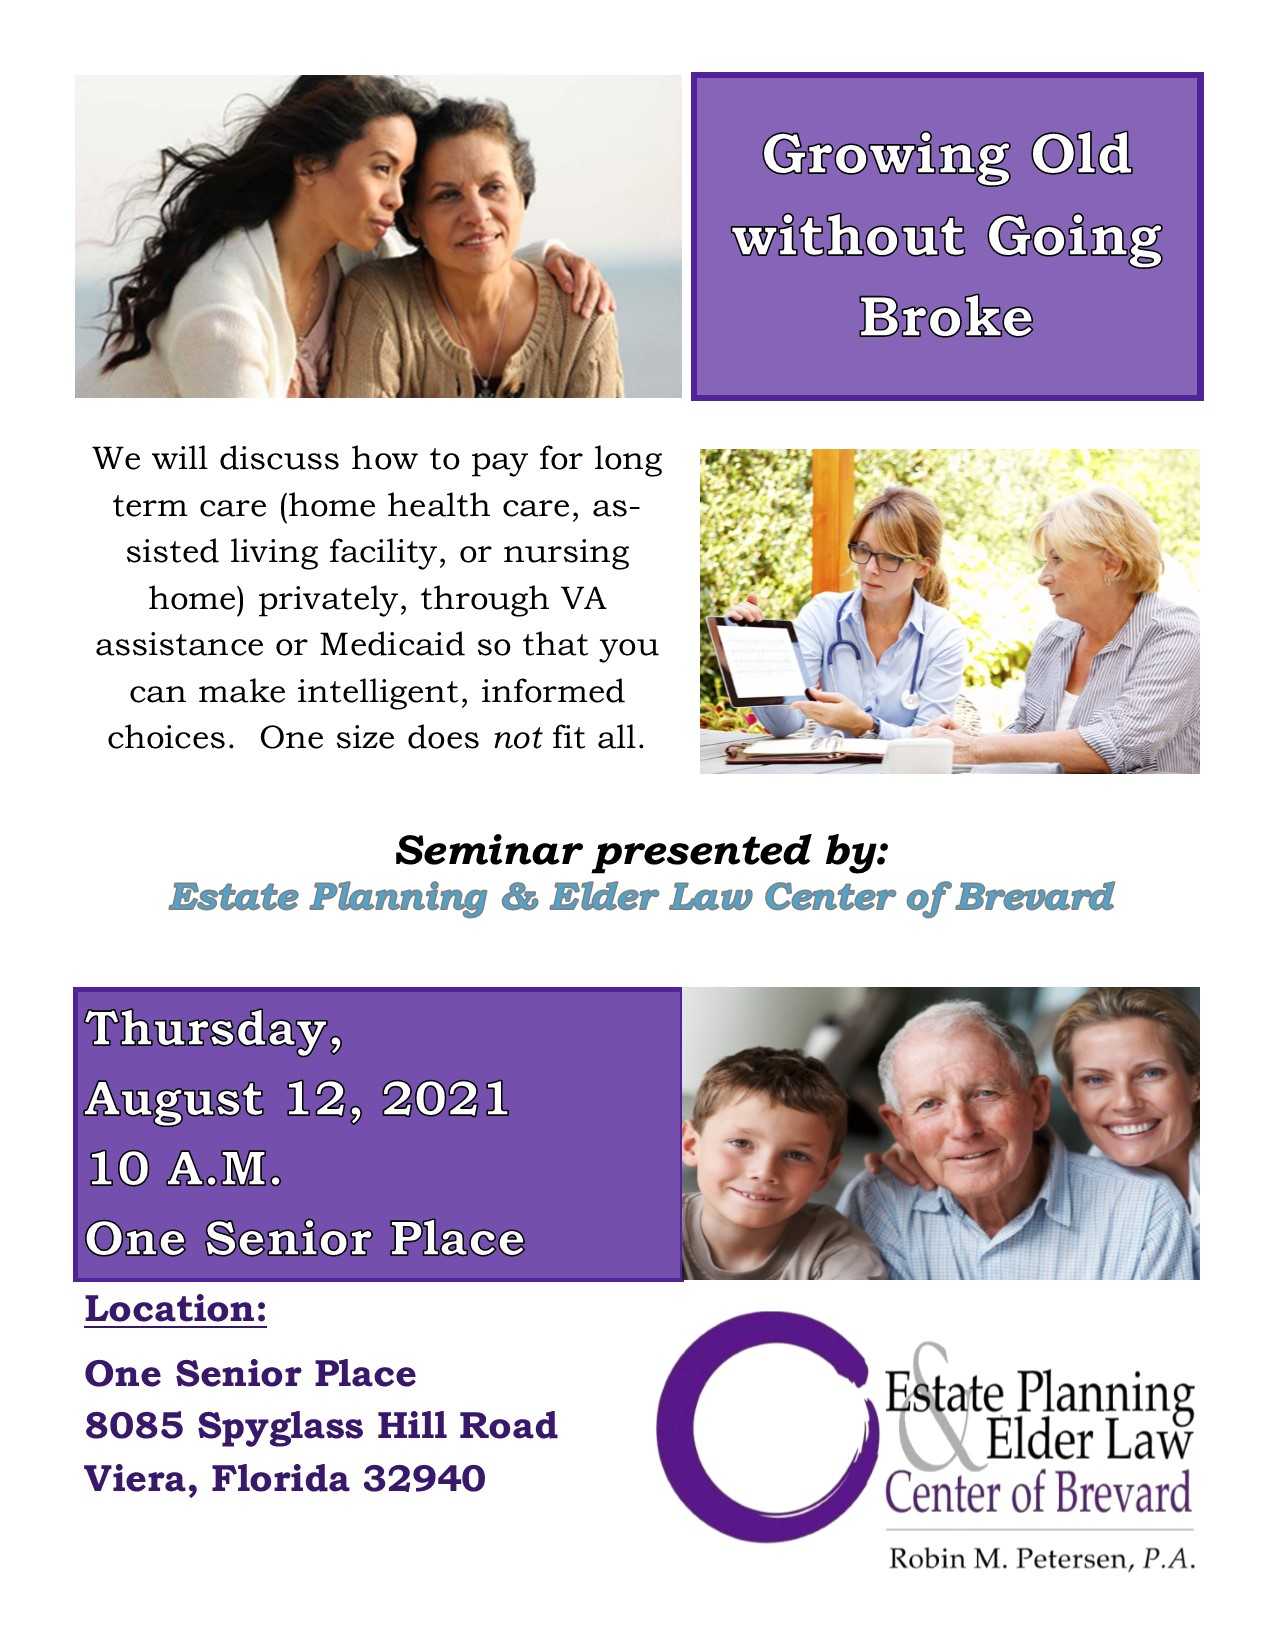 Growing Old without Going Broke presented by Estate Planning and Elder Law Center of Brevard